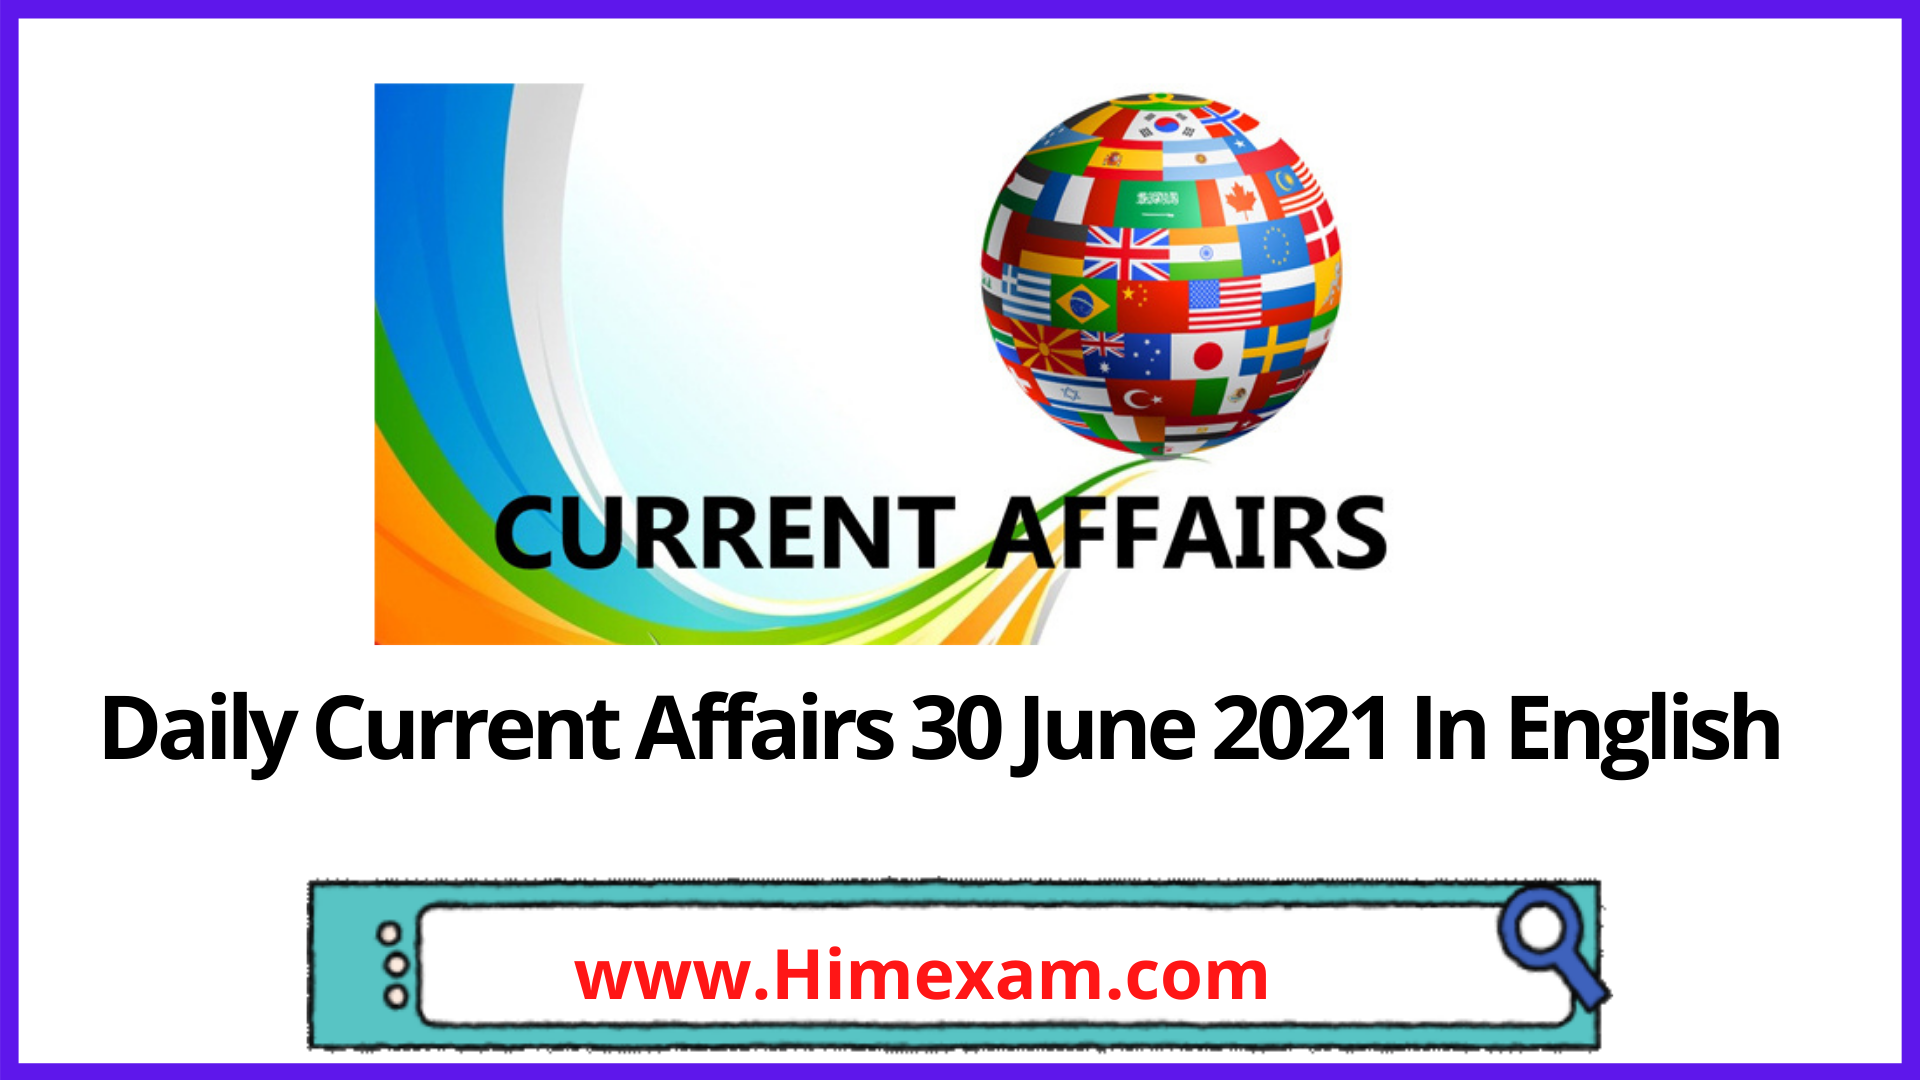 Daily Current Affairs 30 June 2021 In English